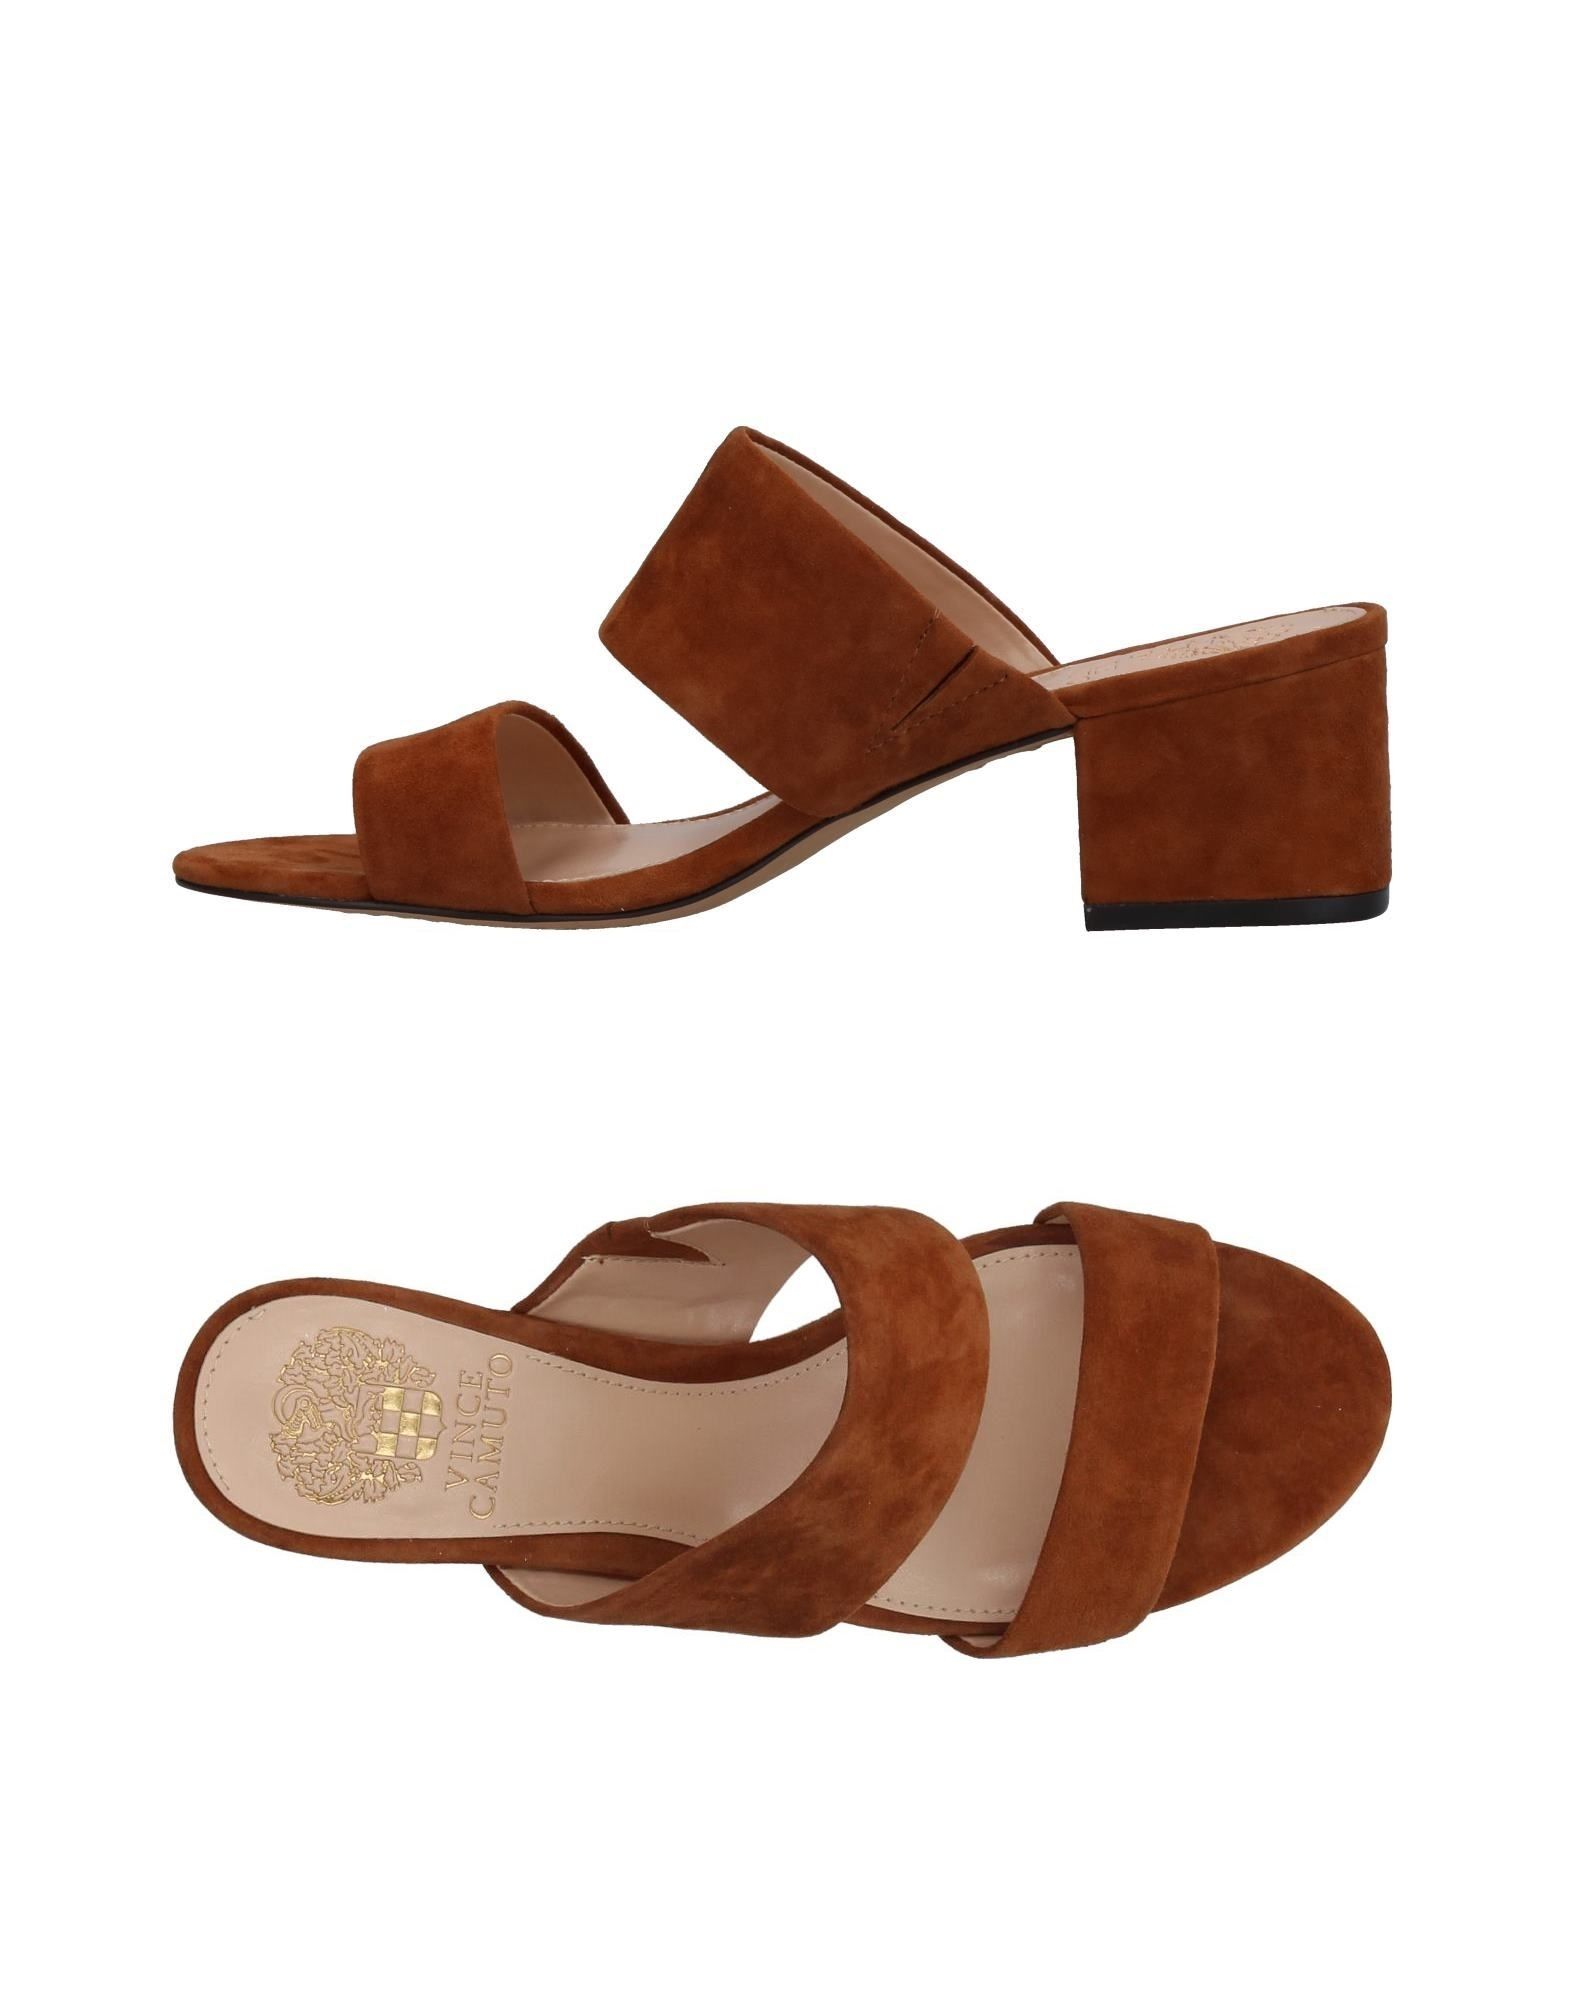 CHAUSSURES - SandalesVince Camuto vr7DWqzU